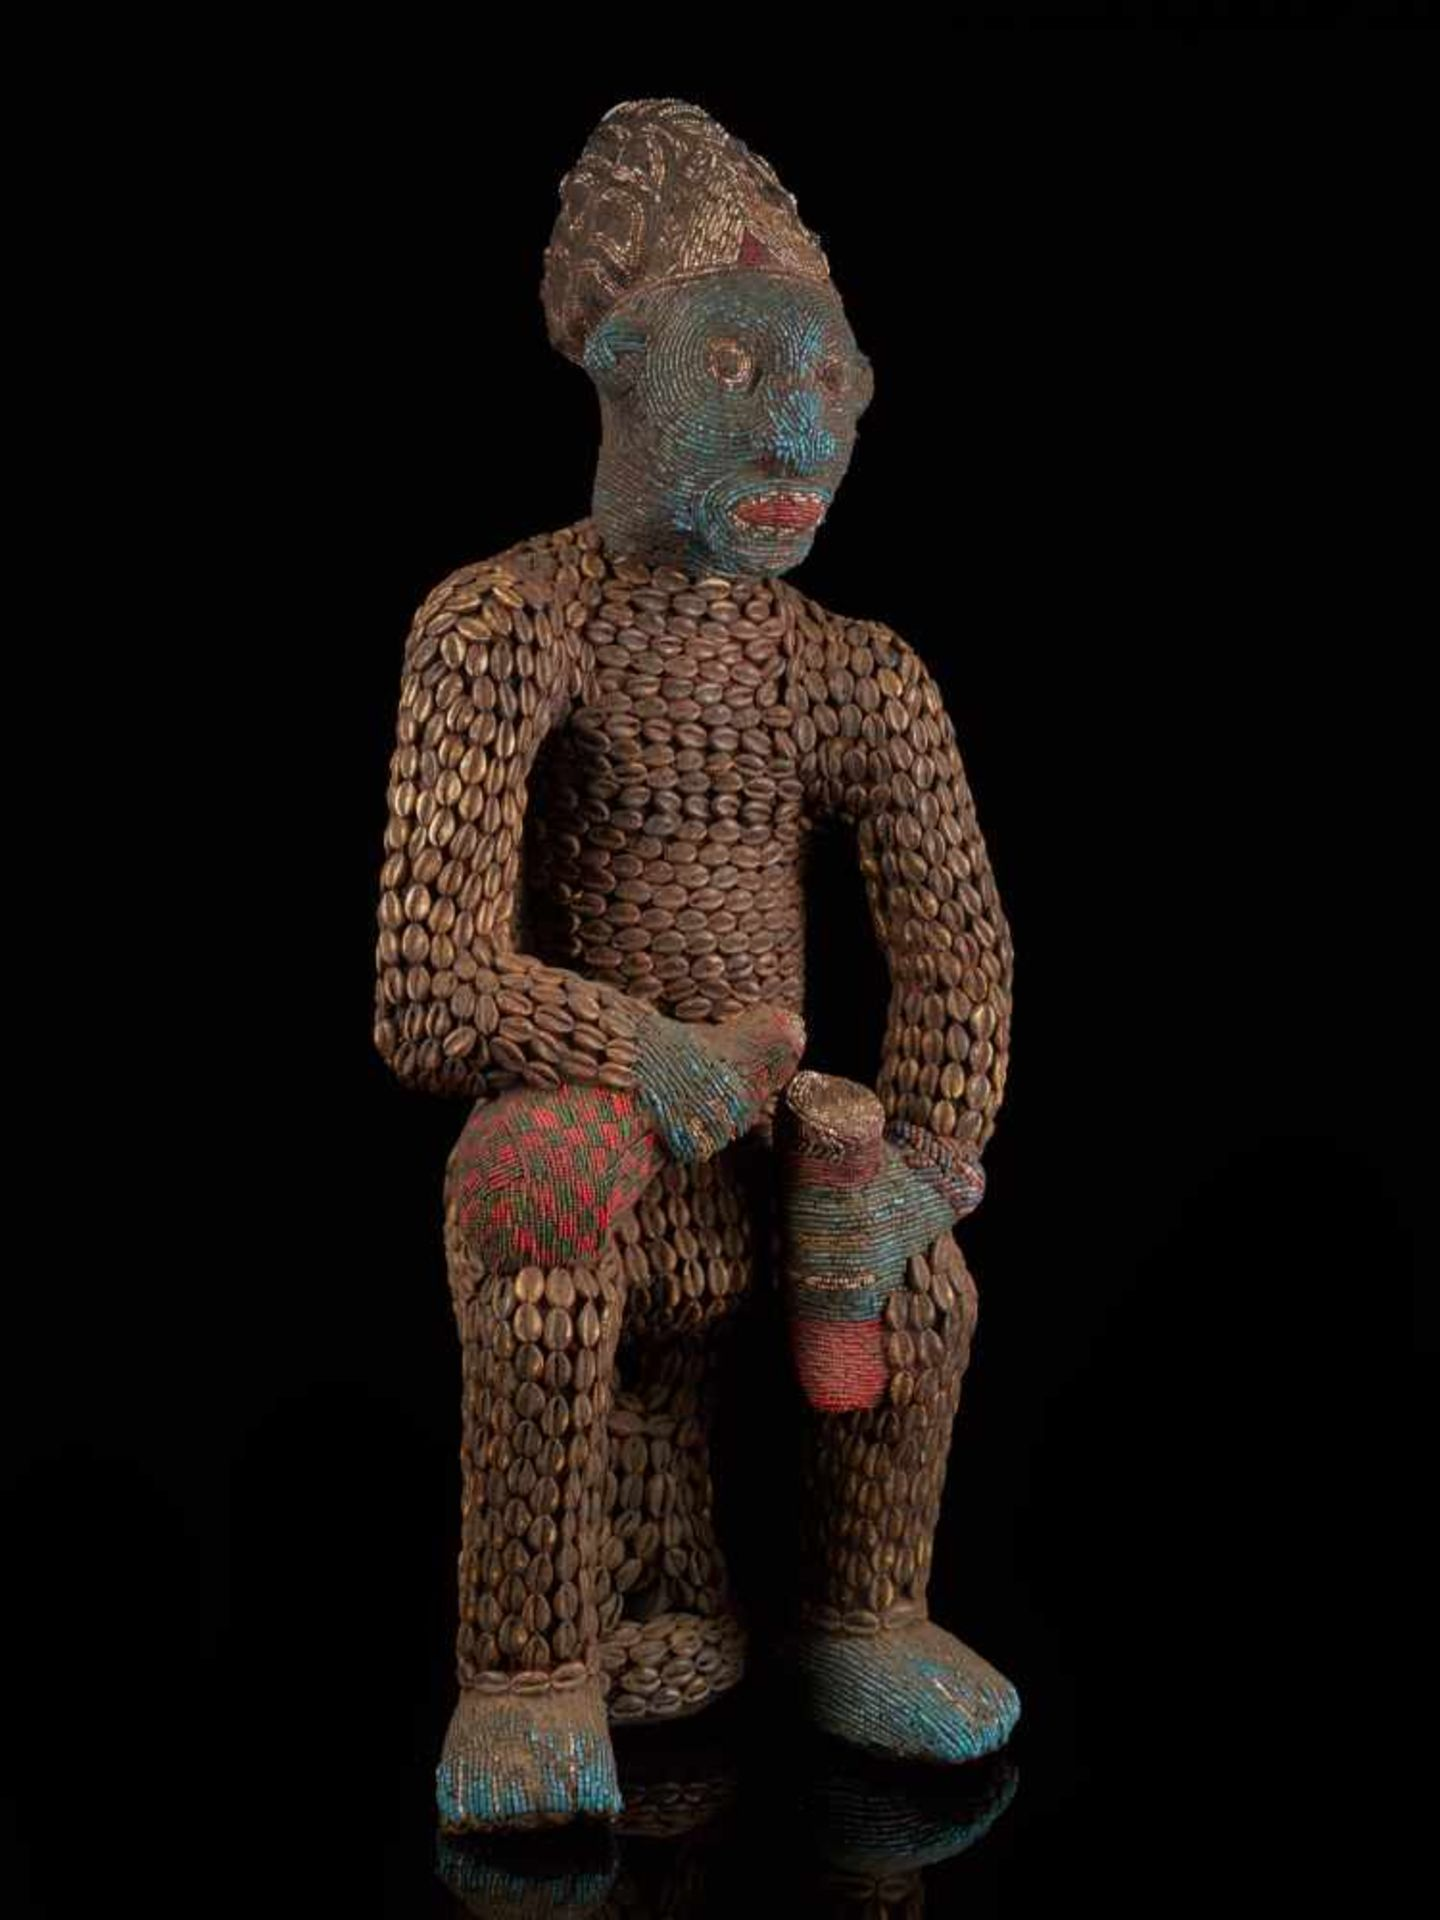 Beaded Royal Figure Holding Wine Vessel - Tribal ArtThis exquisite beaded figure of a man holding - Bild 5 aus 8